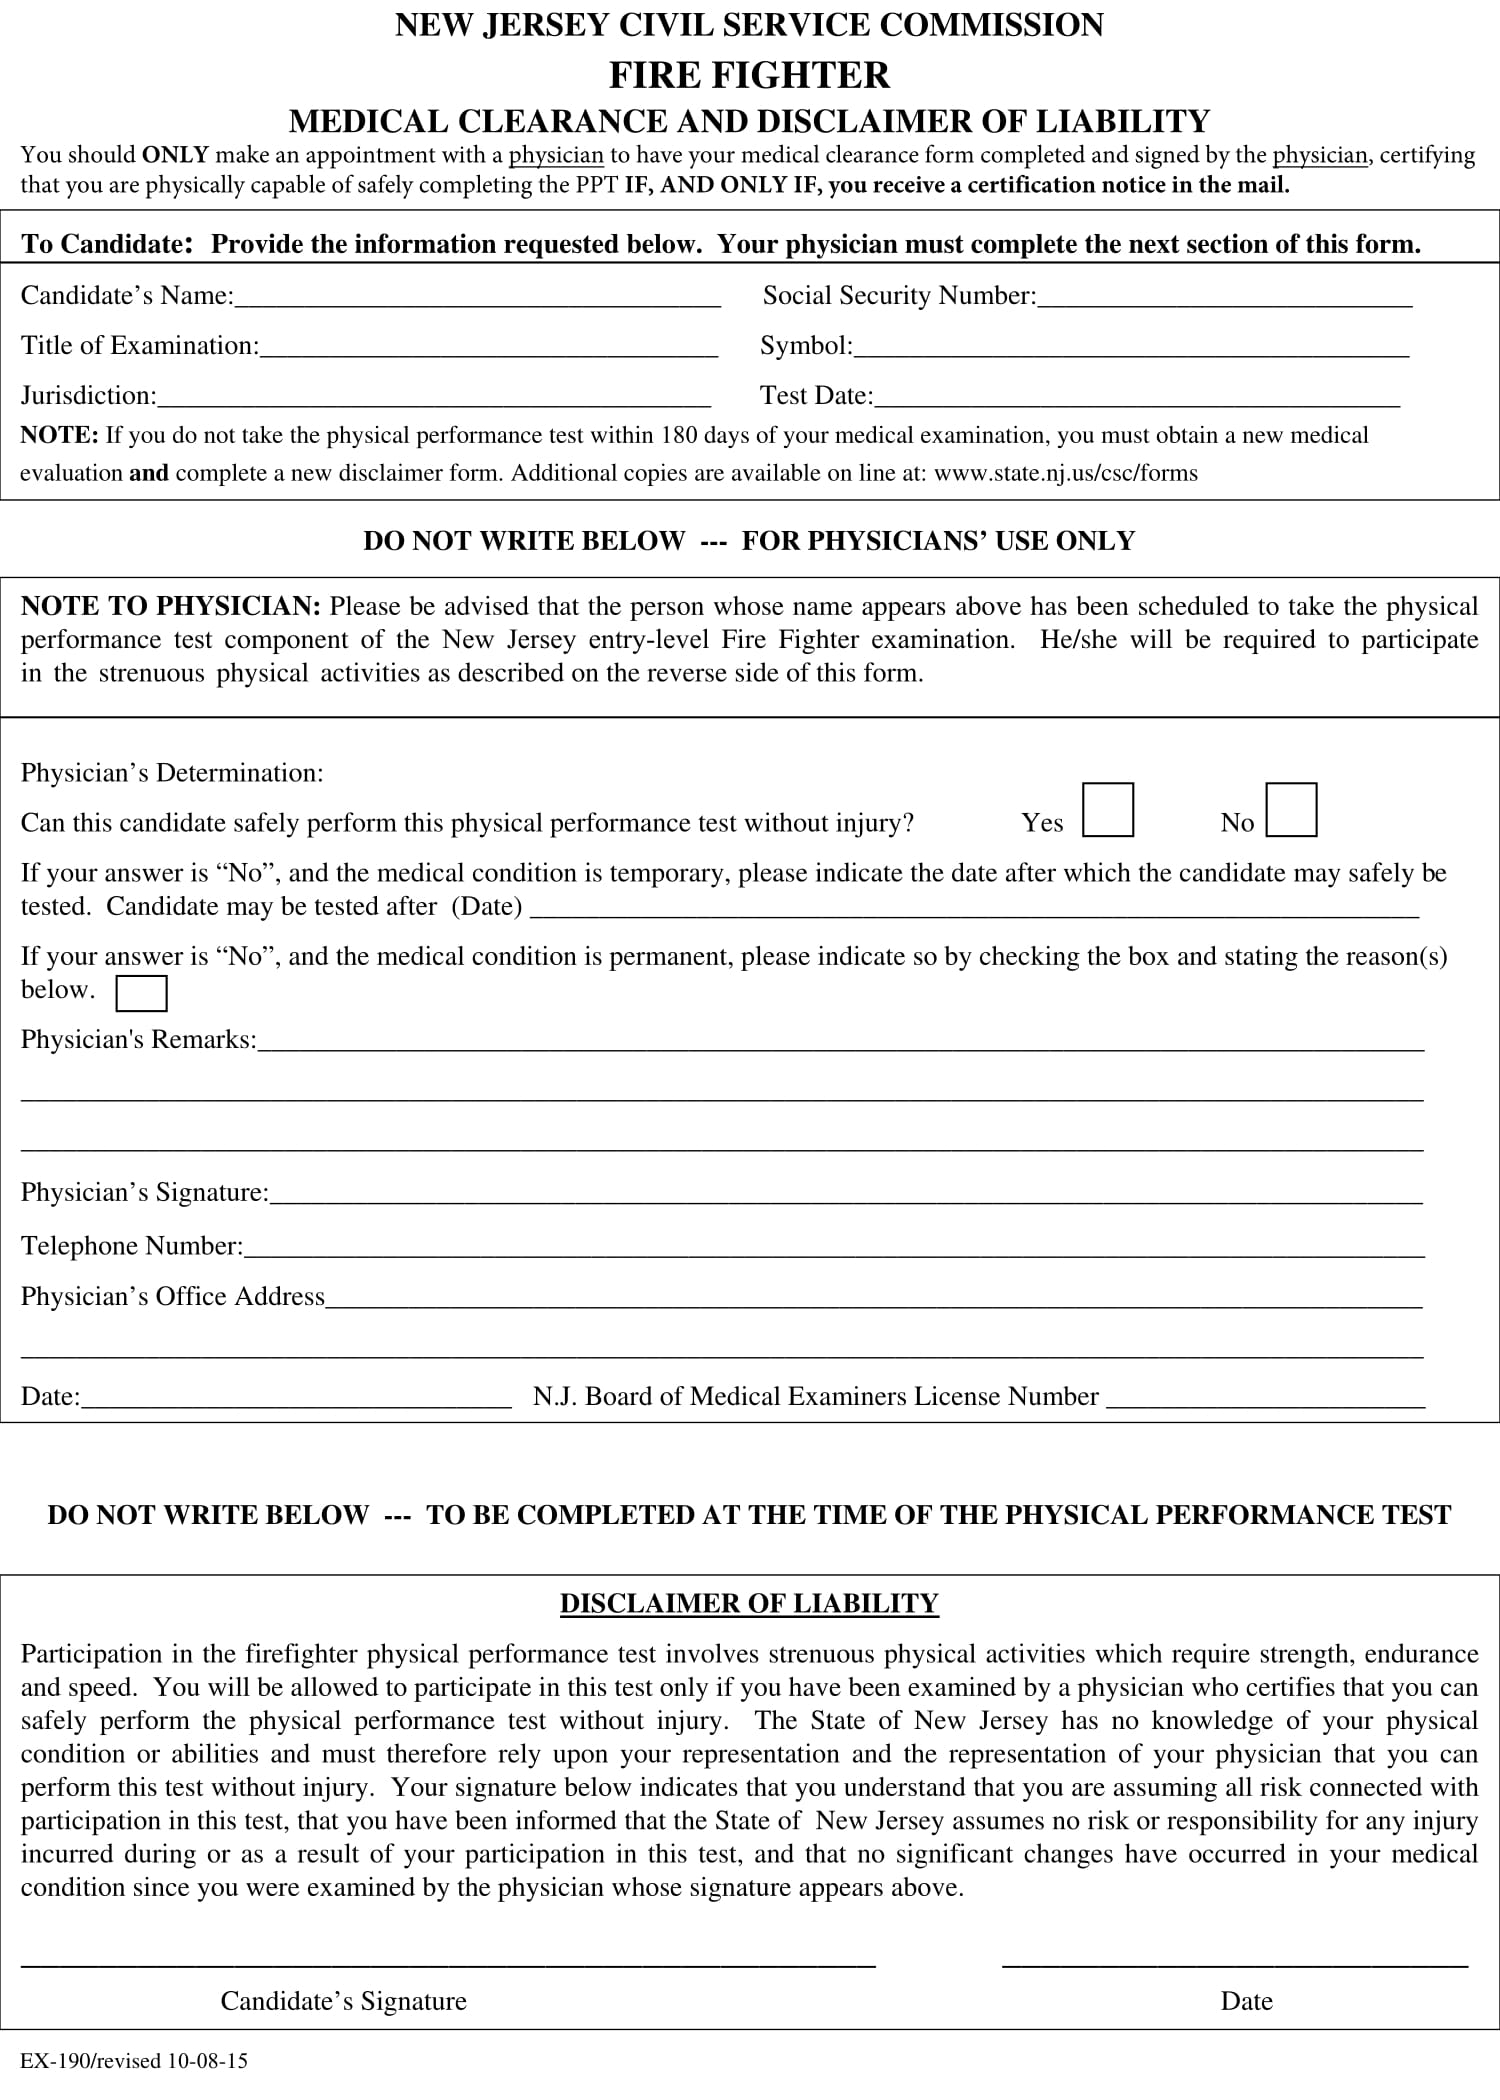 firefighter medical clearance form 1